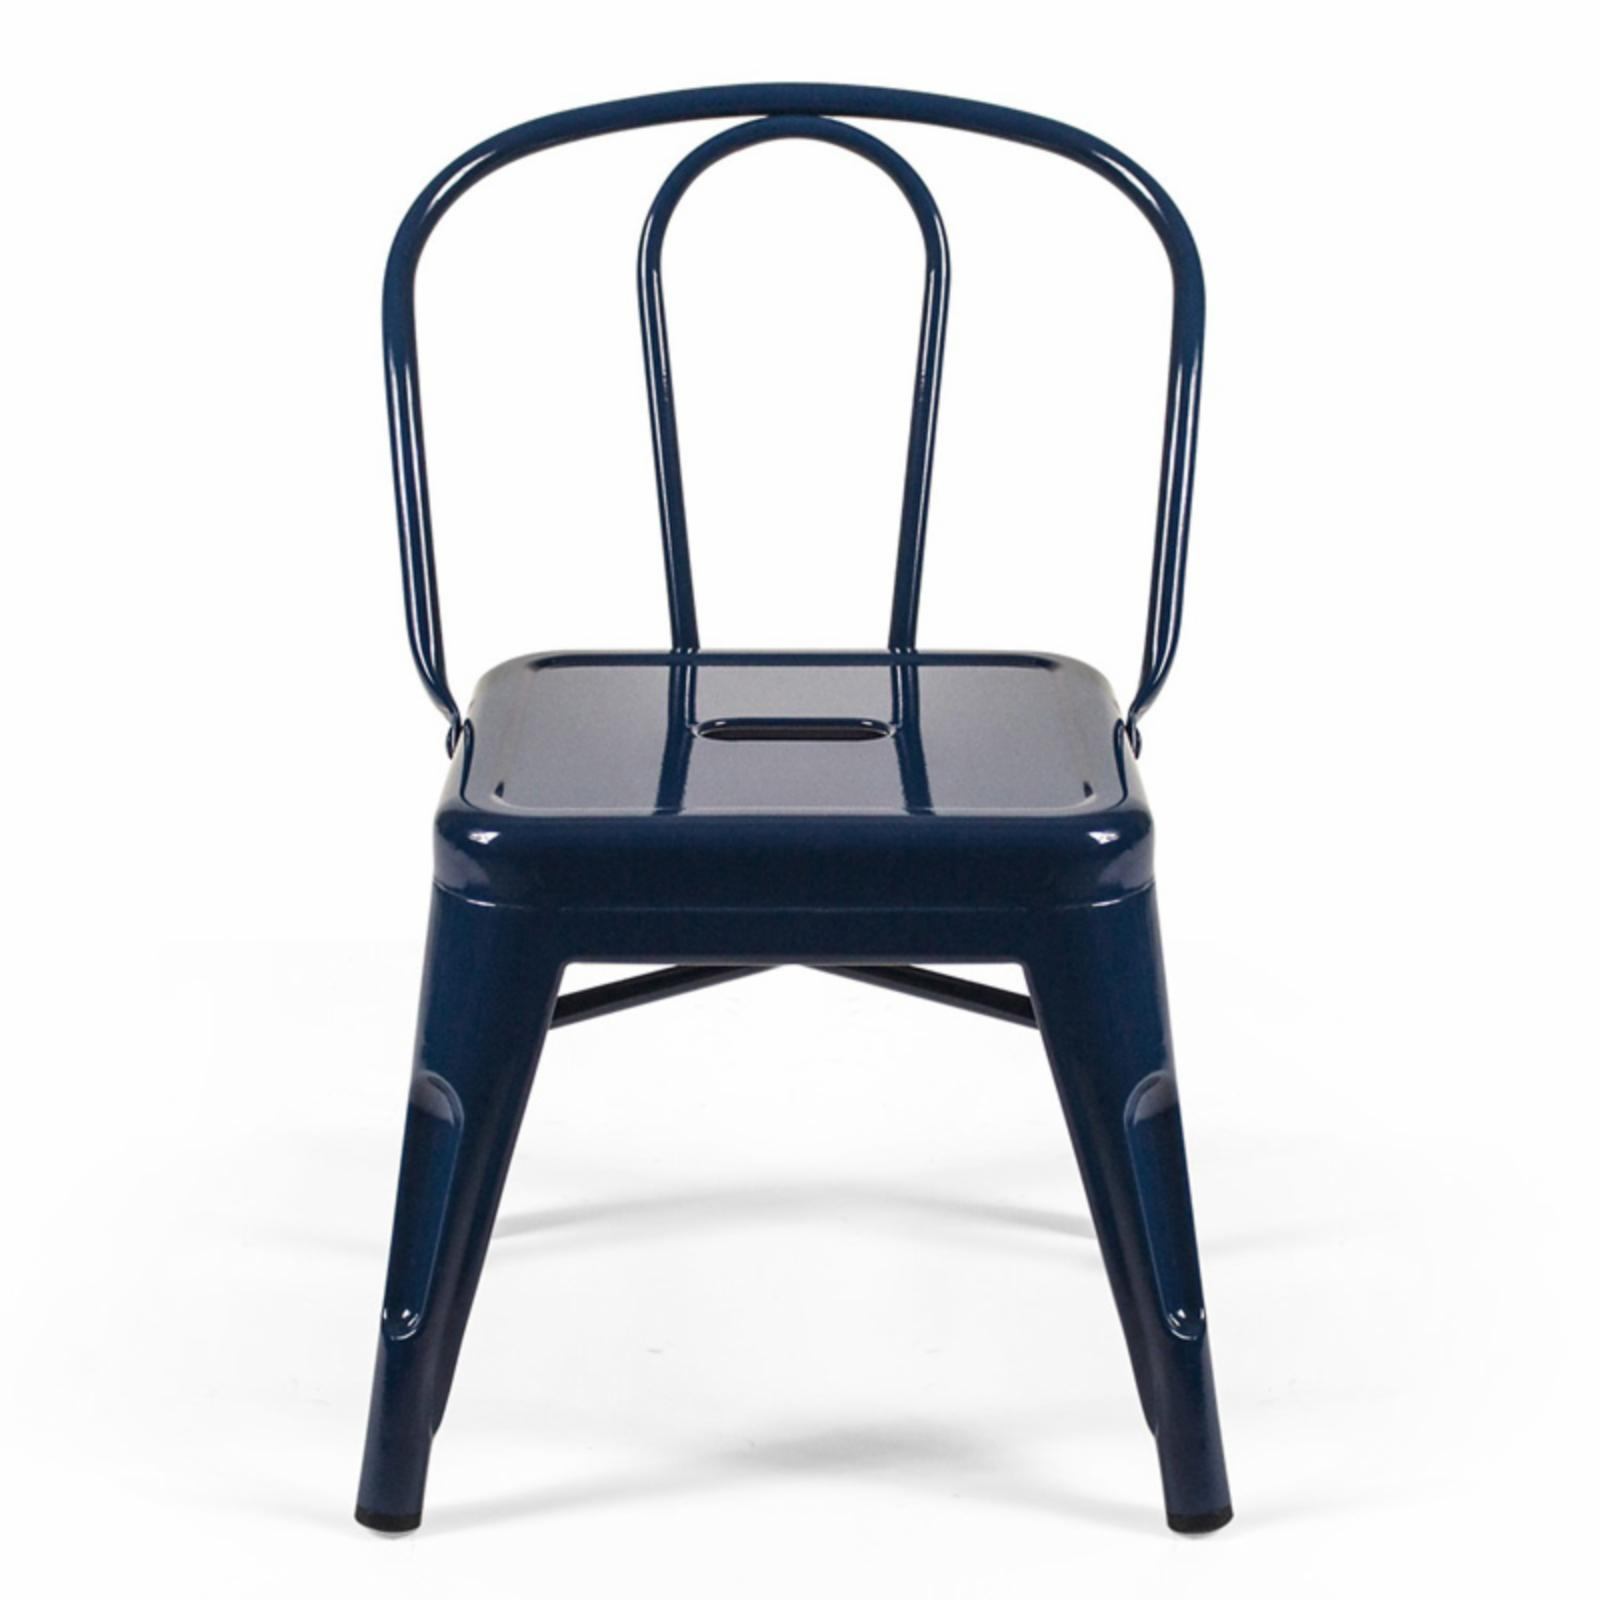 Aeon Furniture Glenda Childs Table with Chairs Navy - ANGI169-5